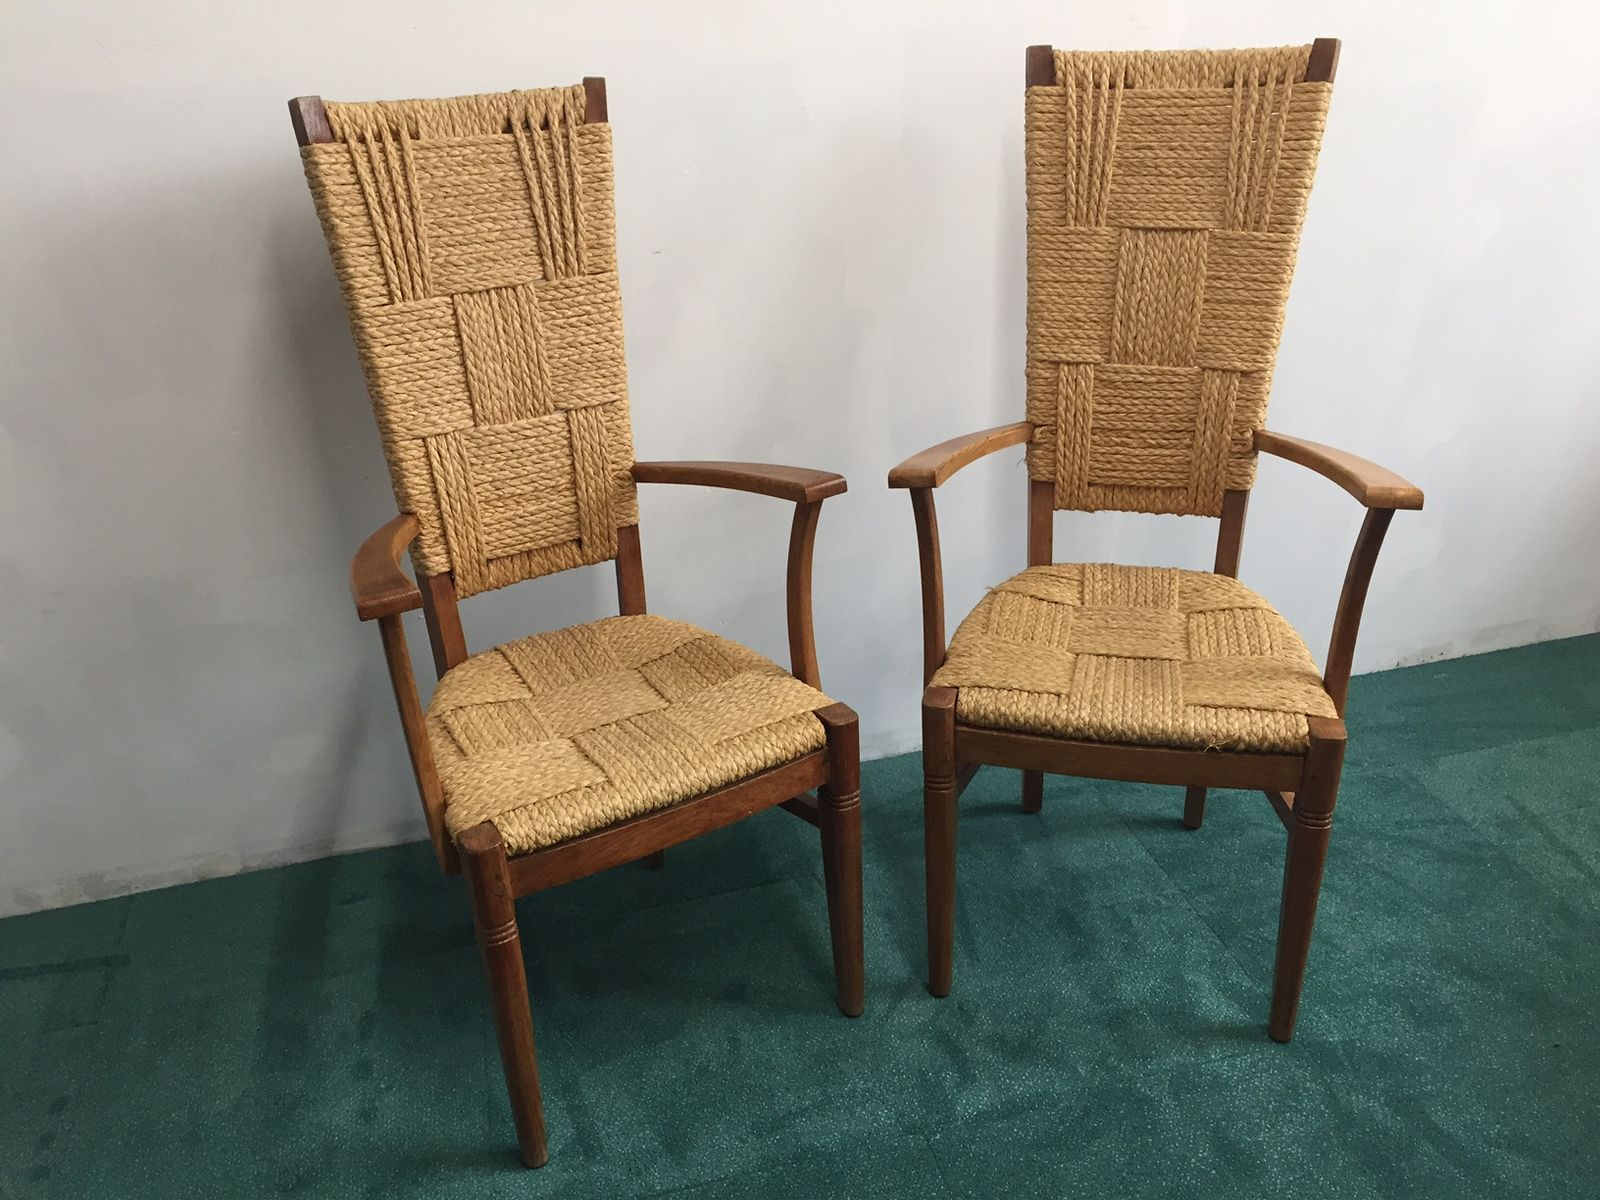 Superbe Vintage High Back Chairs By Audoux Minet, Set Of 2